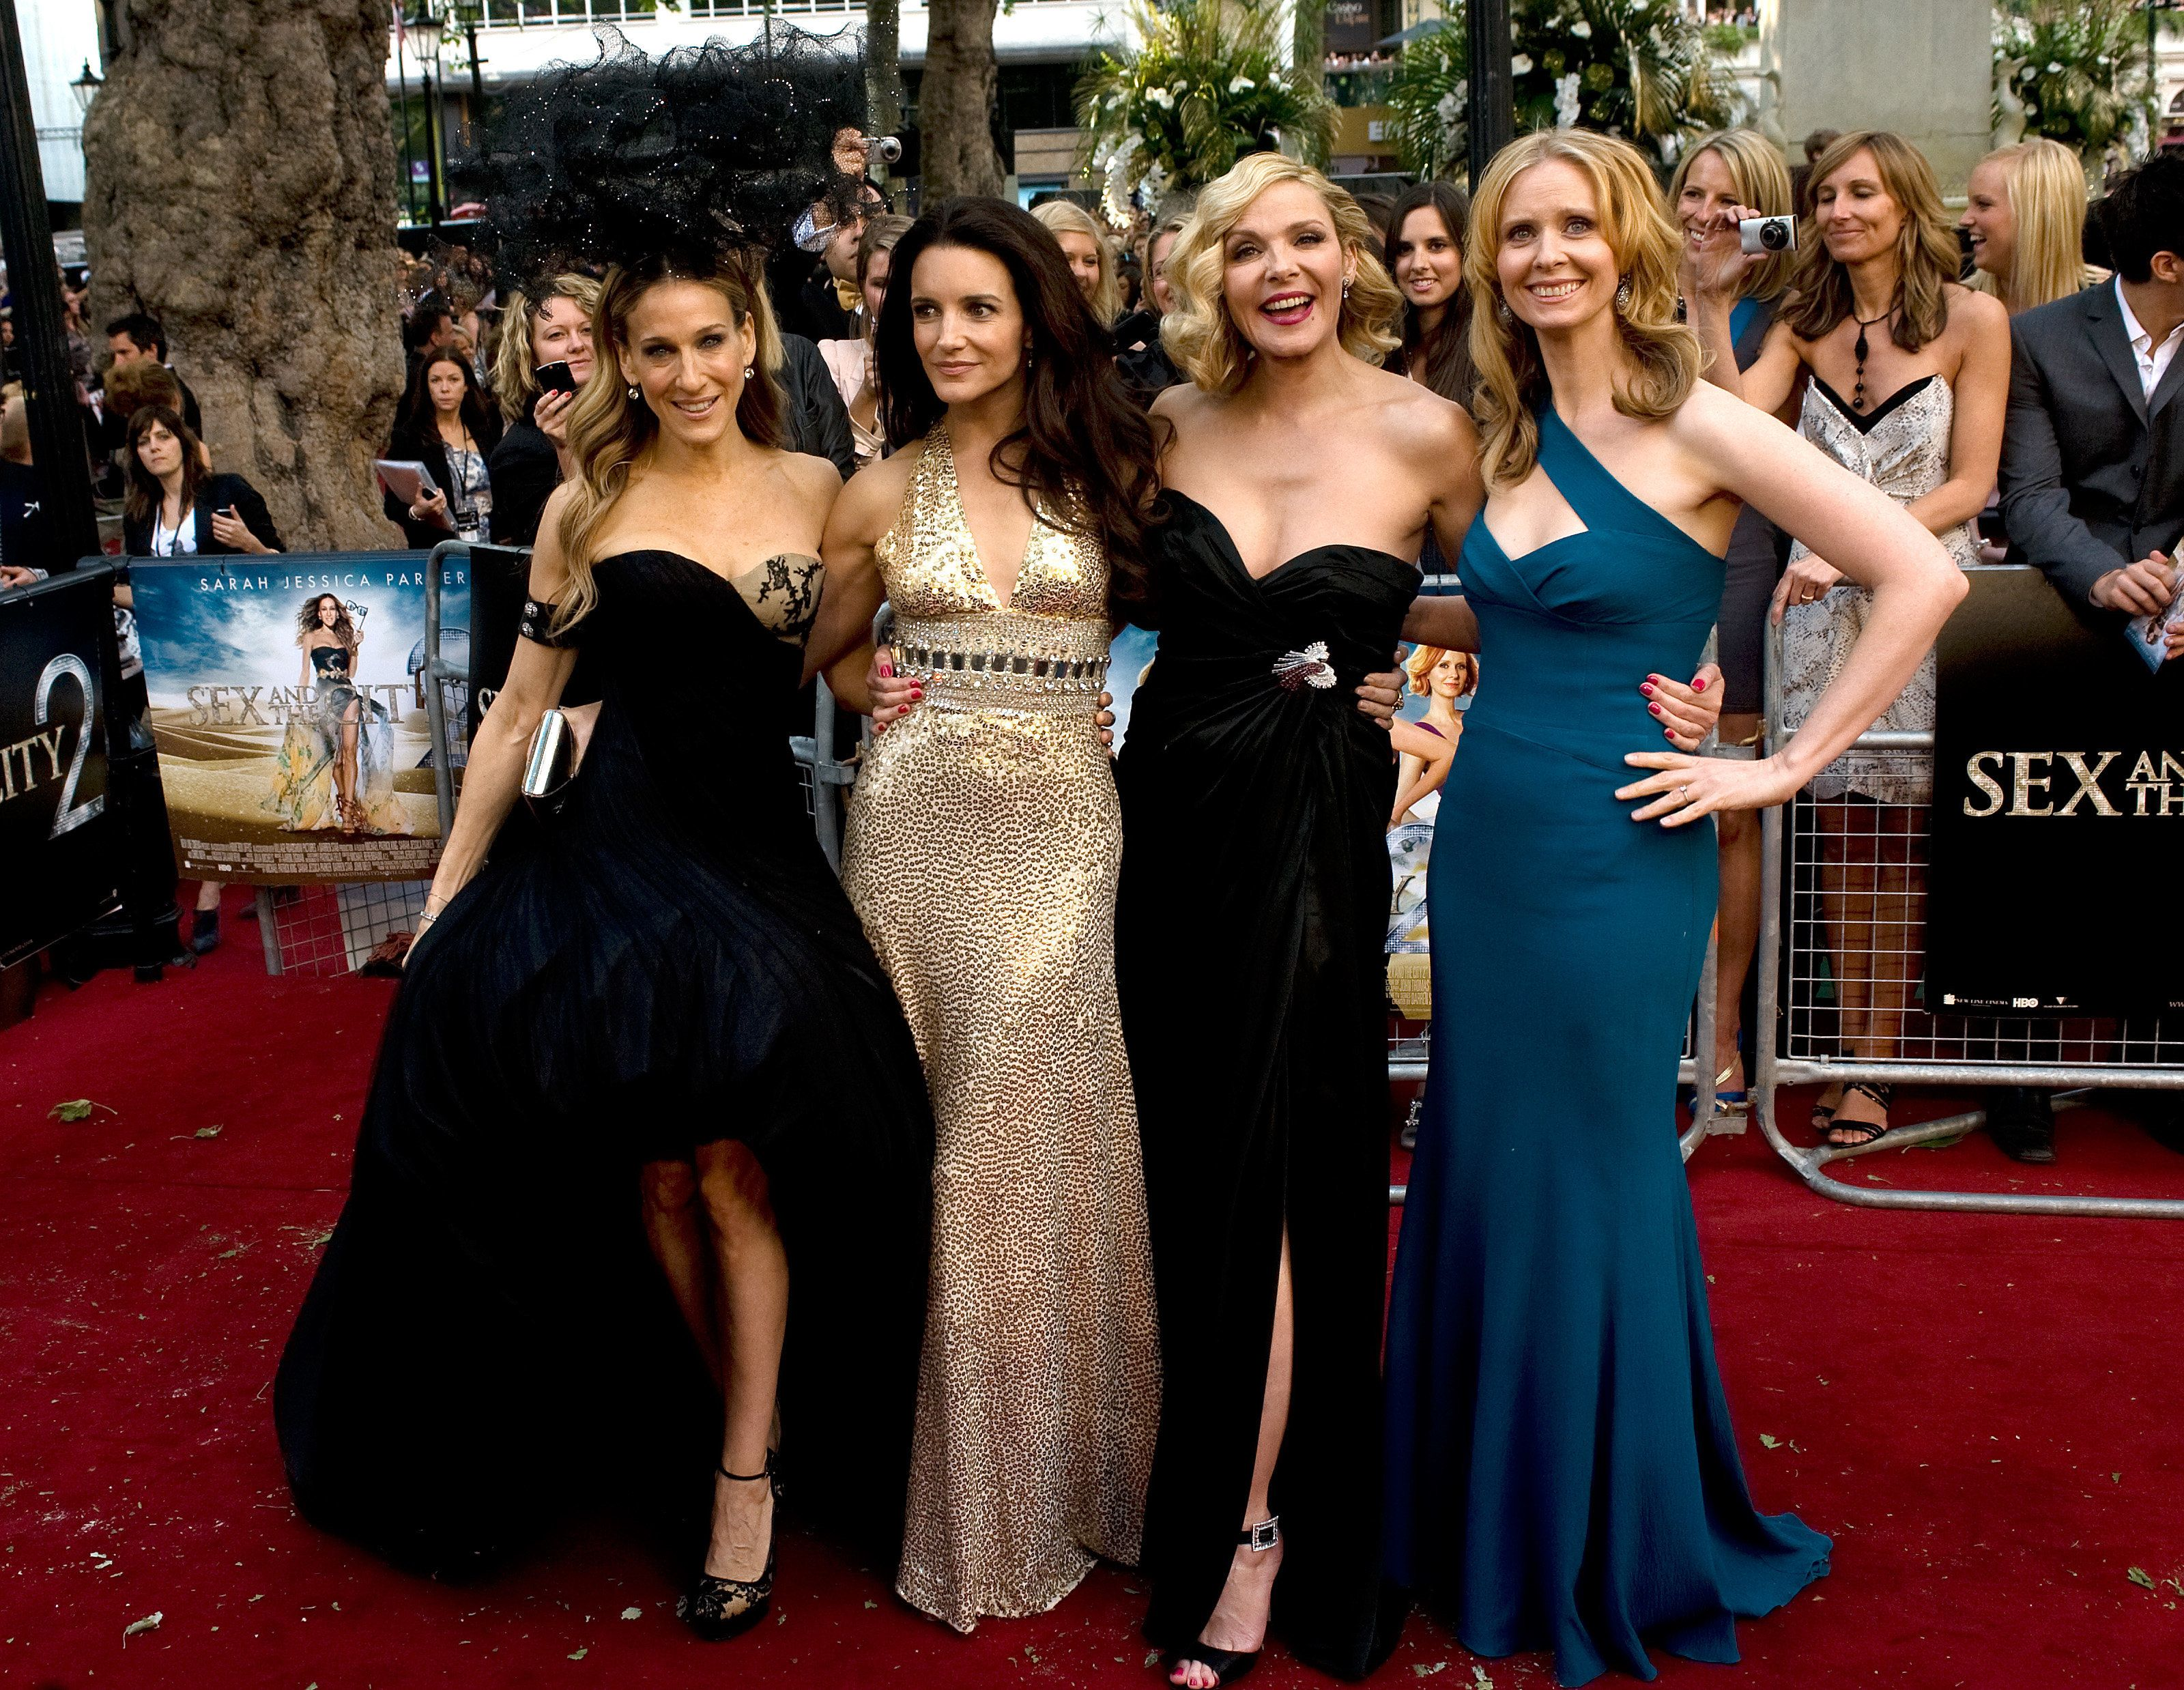 """Sarah Jessica Parker, Kristin Davis, Cynthia Nixon and Kim Cattrall at the premiere of """"Sex and the City 2."""""""